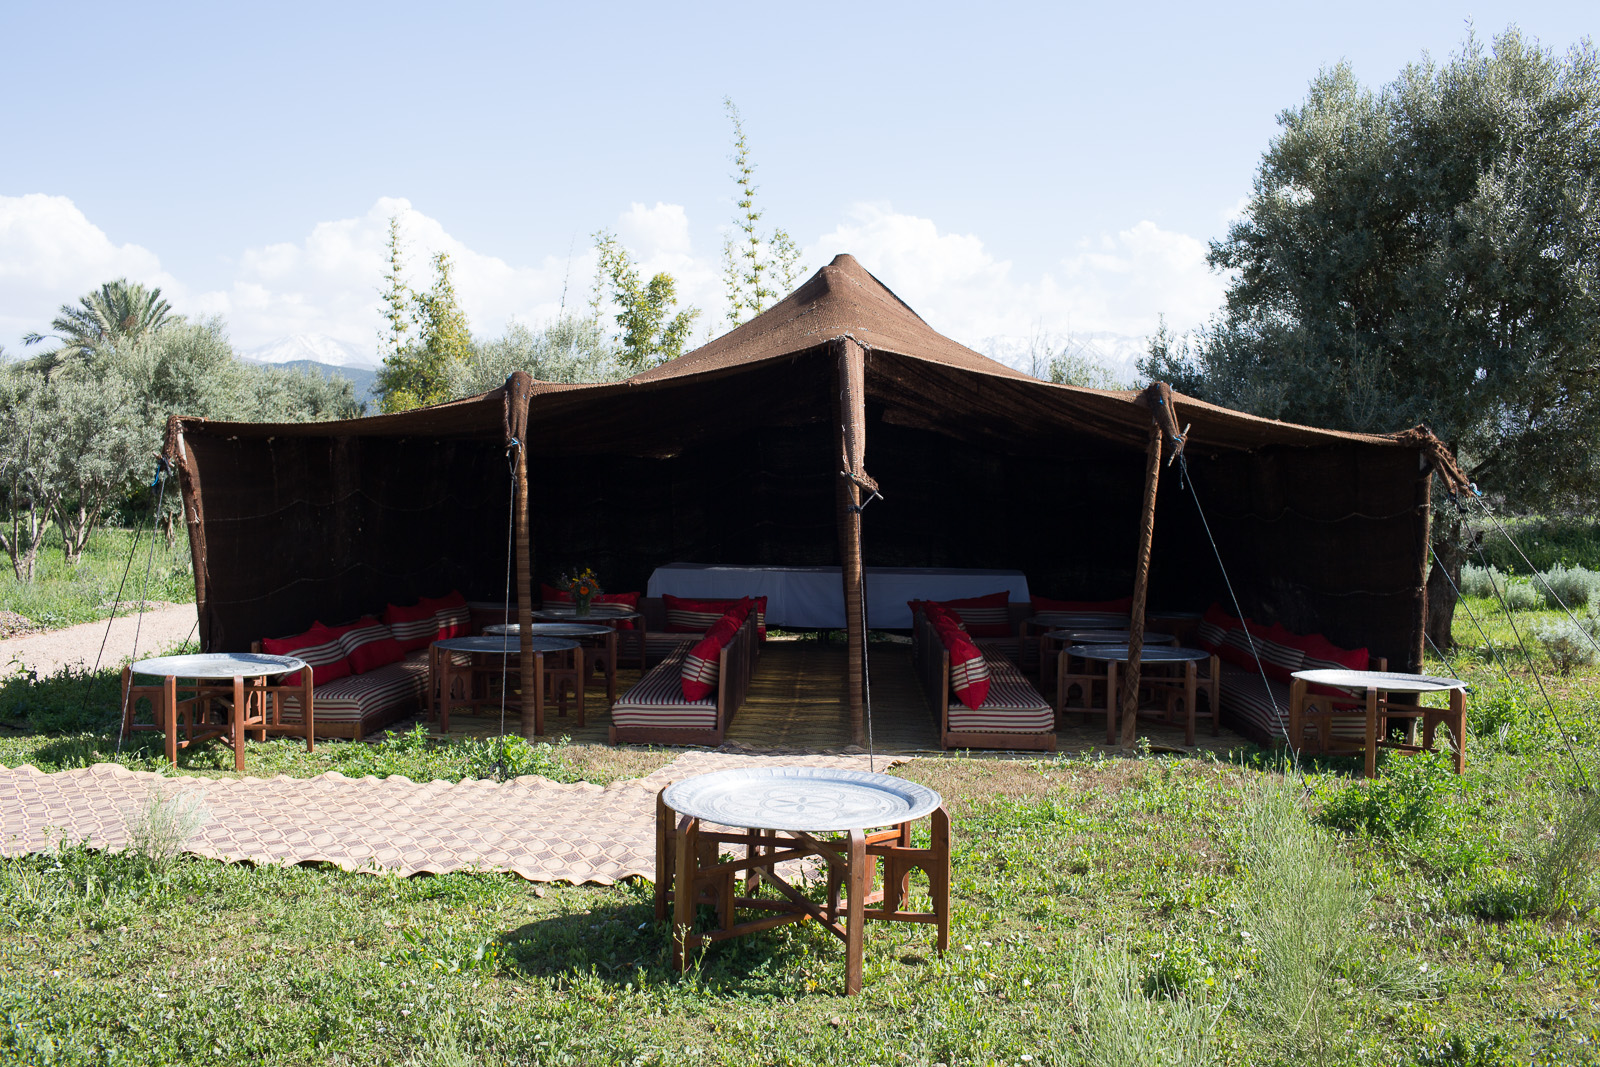 Berber tent and mechoui    - Traditional mechoui experience: whole lamb slow roasted in this special earth outdoor oven served under the Berber tent (by prior arrangement)